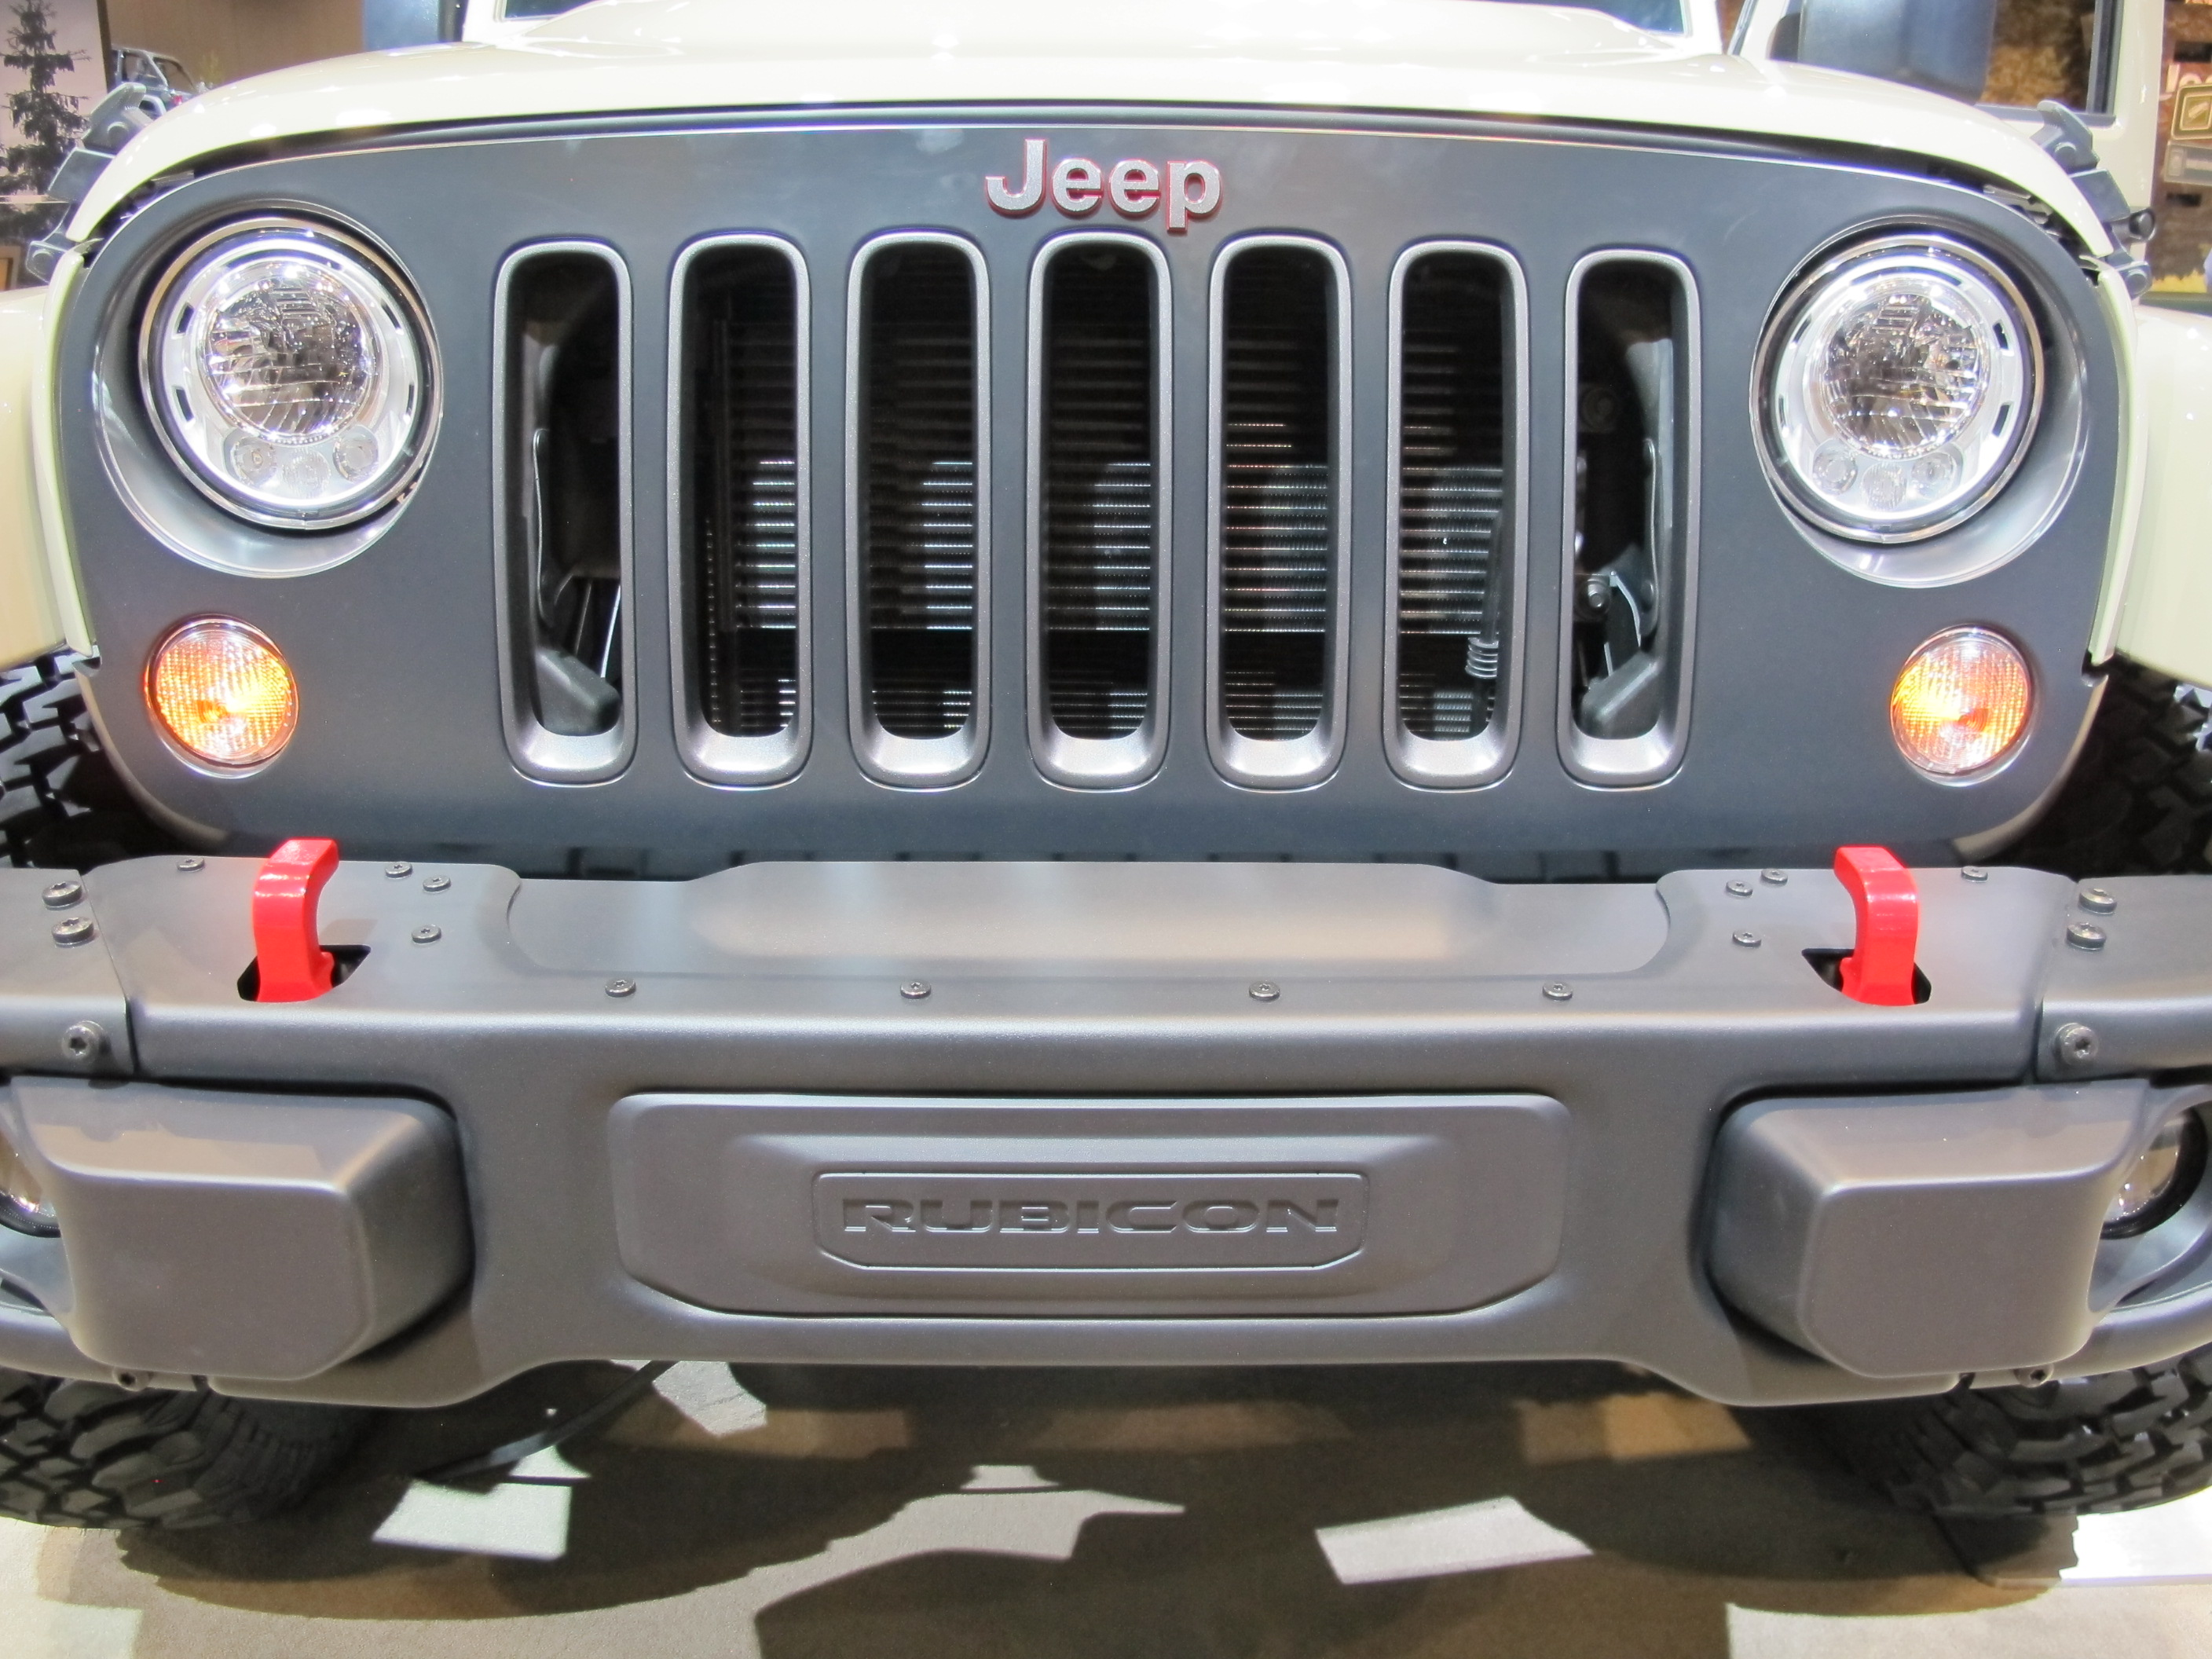 Jeep Wrangler Diesel already testing, before 2019 launch